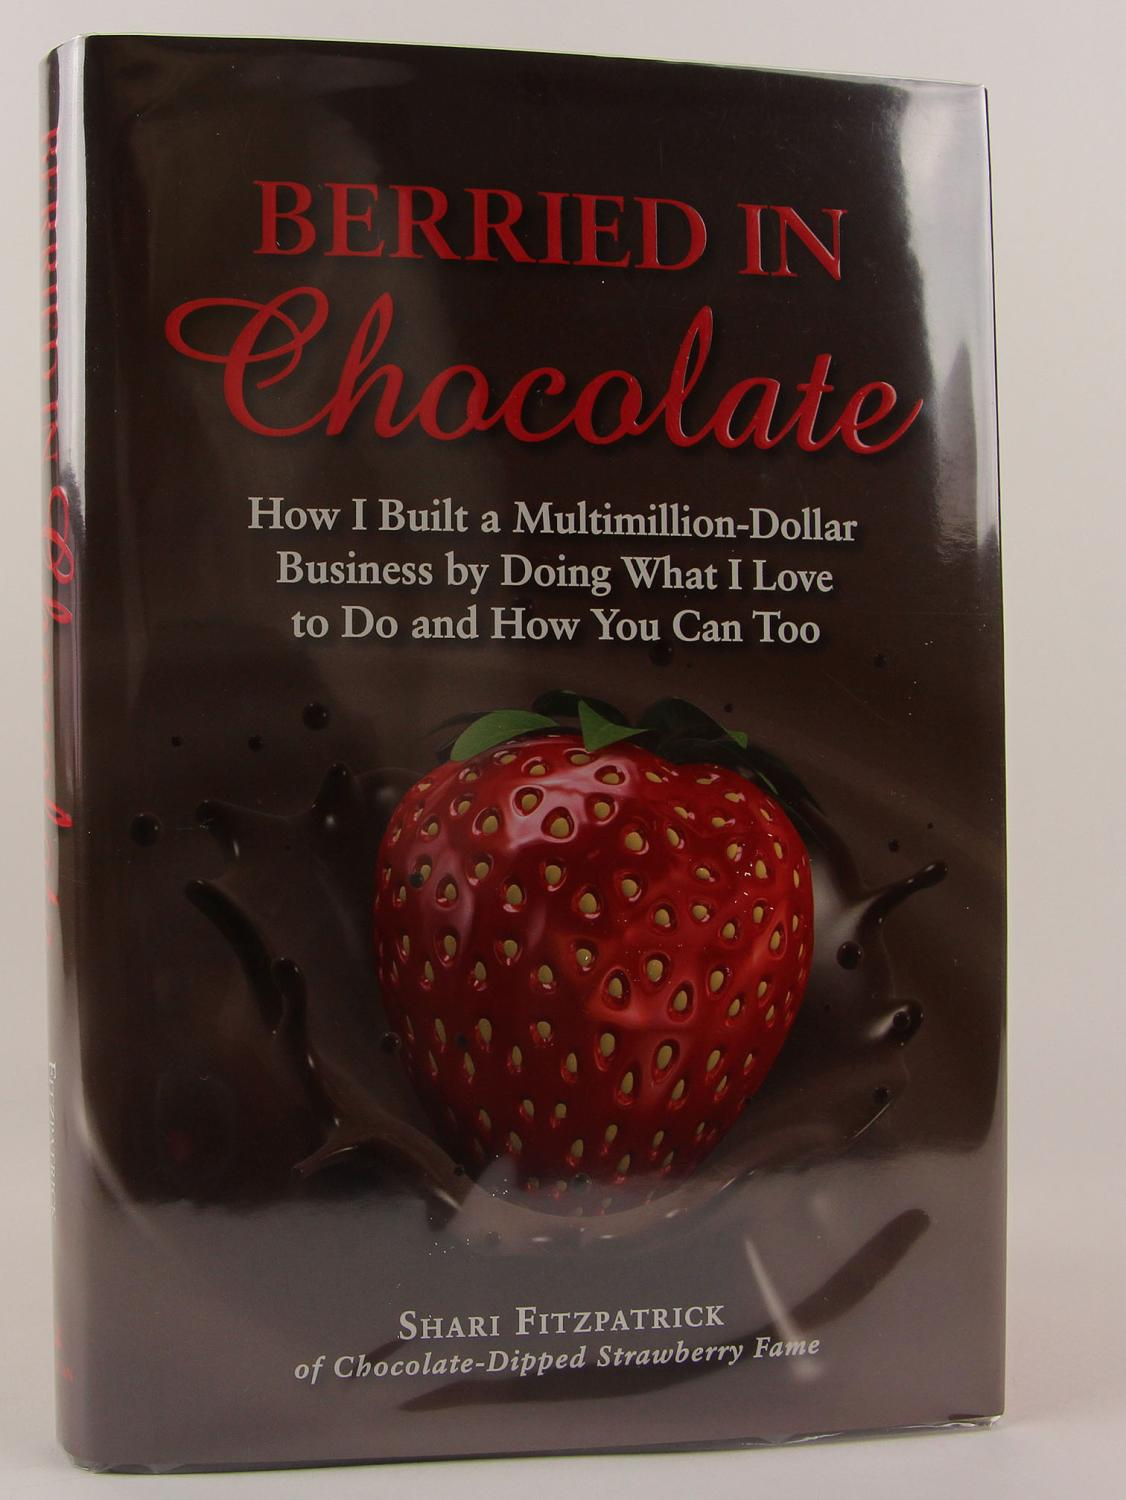 Berried In Chocolate How I Built A Multimillion Dollar Business By Doing What I Love To Do And How You Can Too Fitzpatrick, Shari/ Openshaw, Jennifer